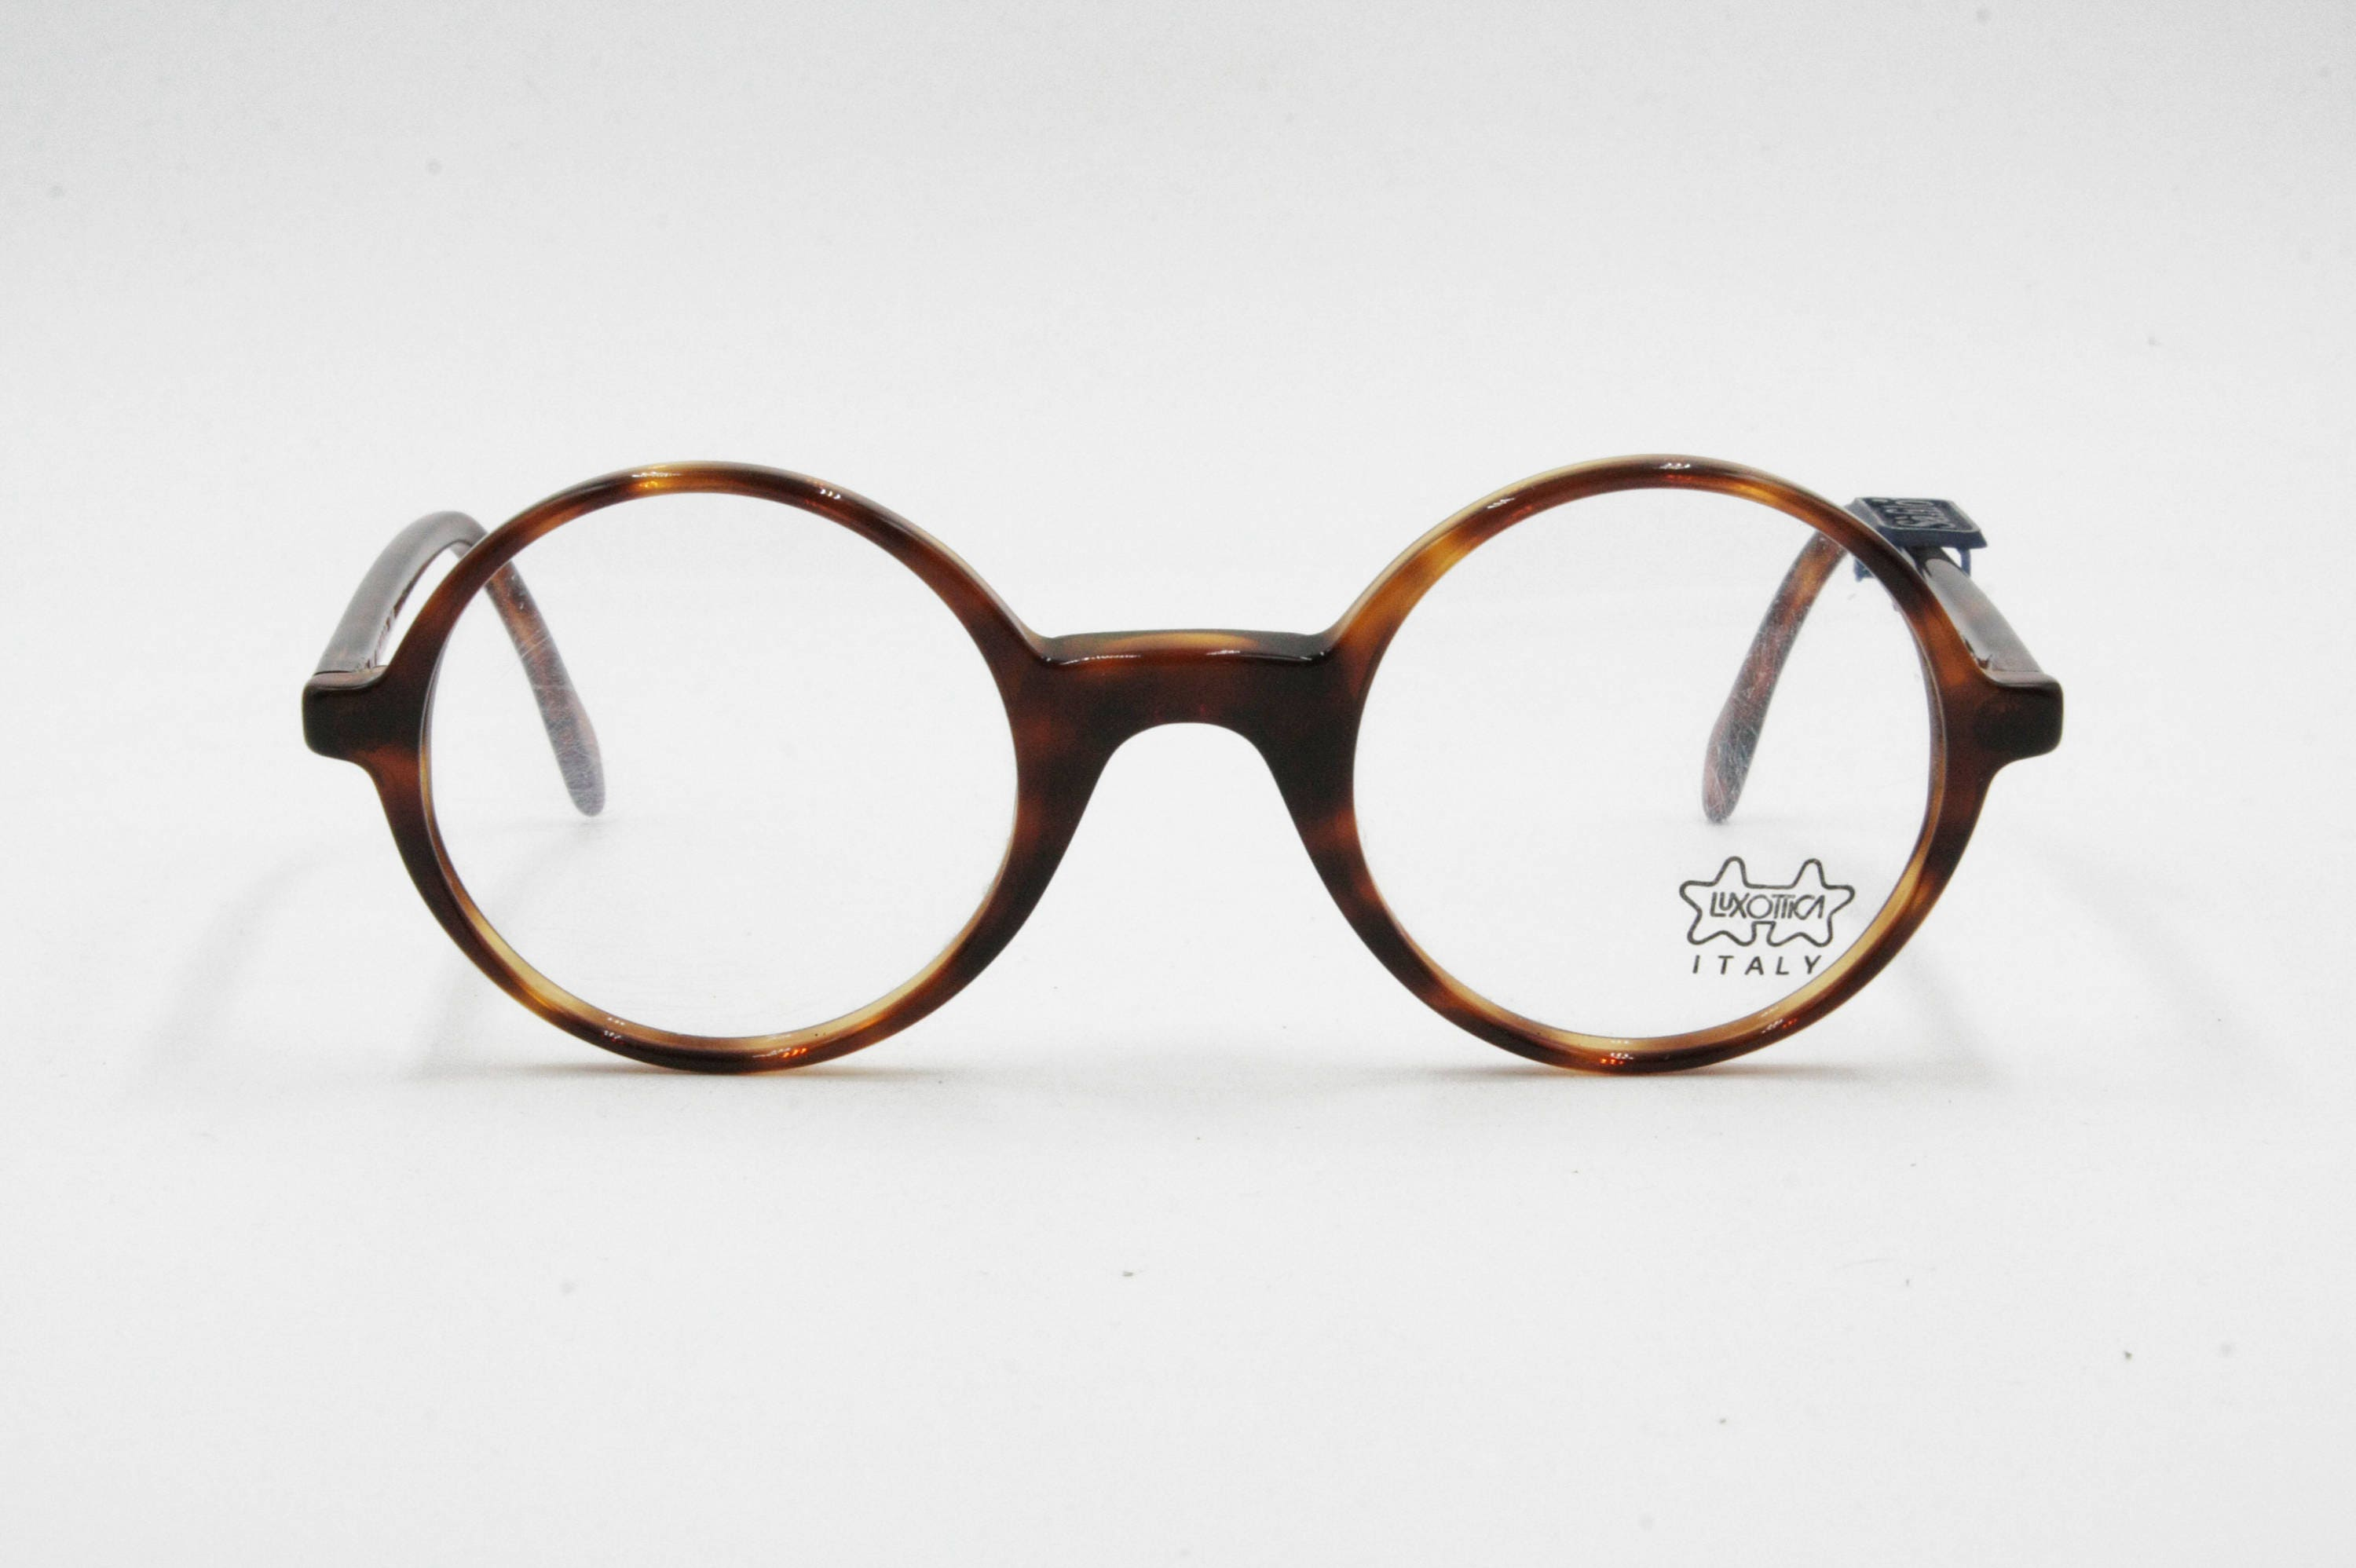 Harry Potter John Lennon frame glasses 70s rare round frame brown ...